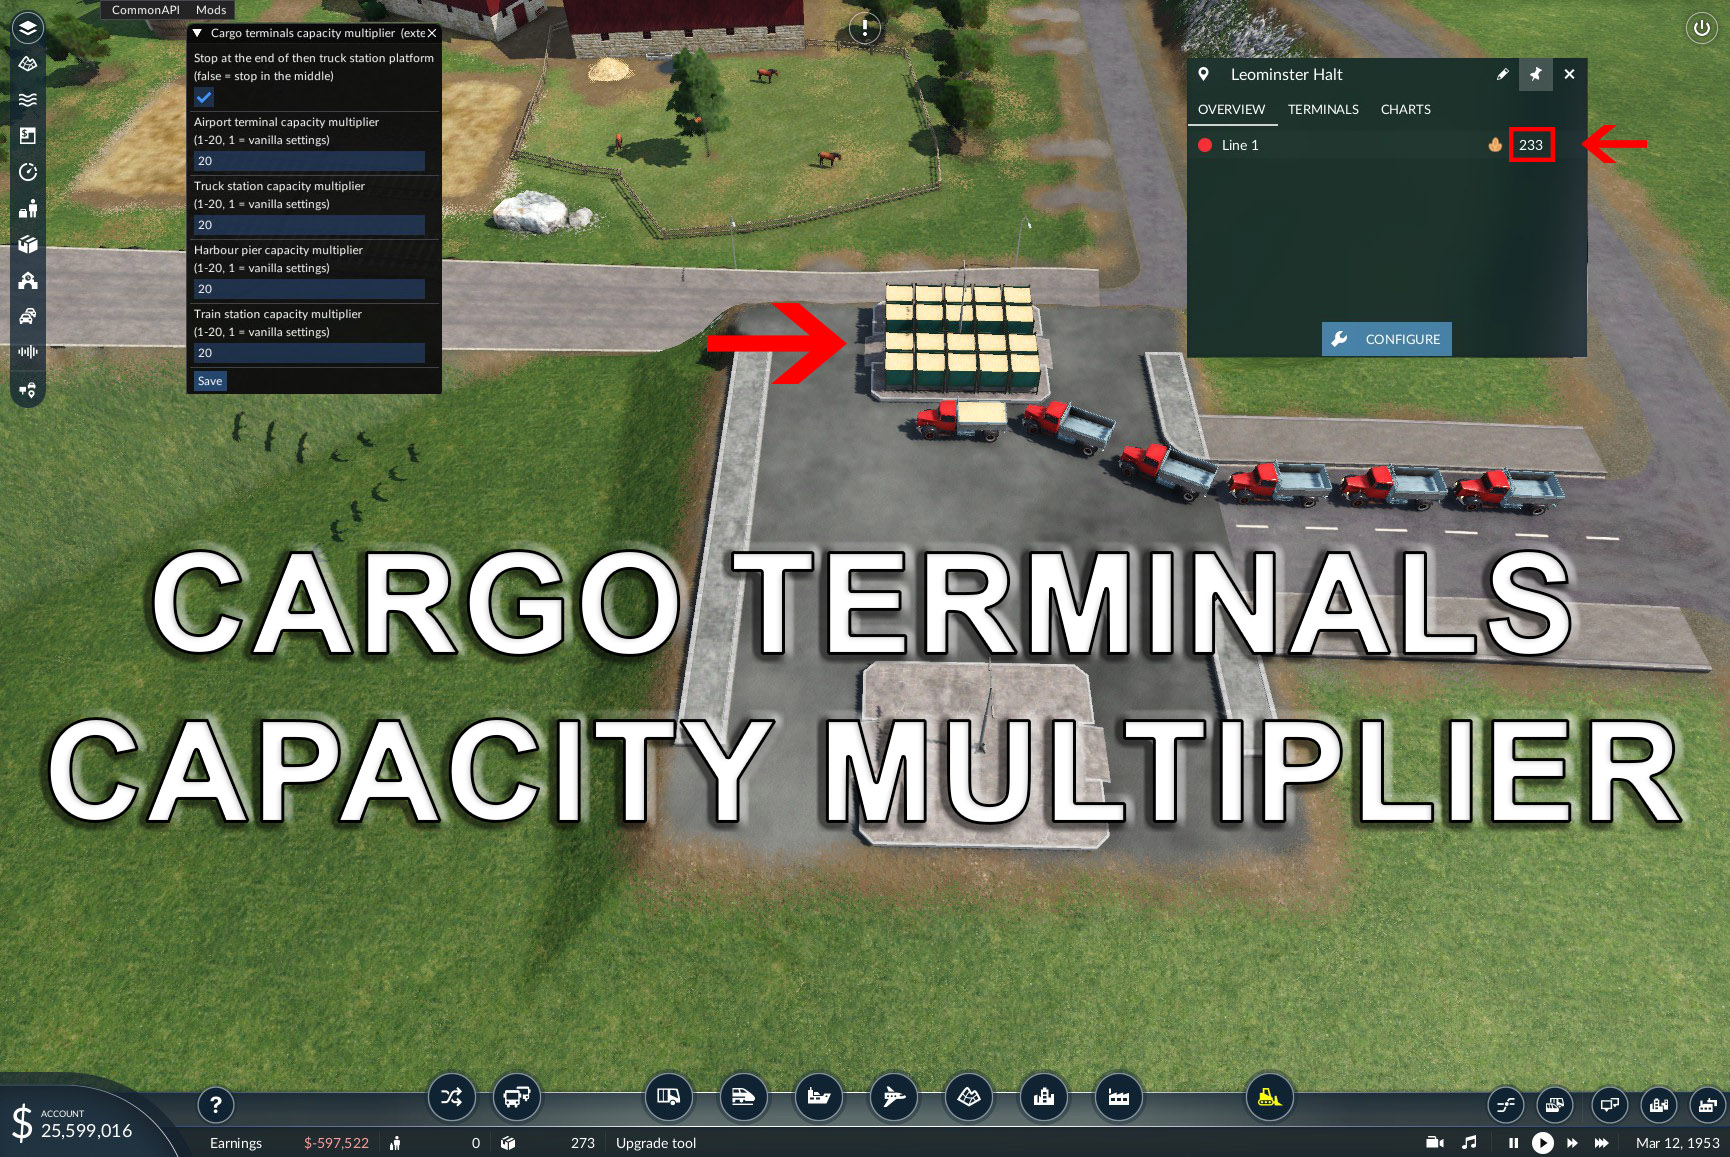 Transport Fever 2 - Cargo Terminals Capacity Multiplier